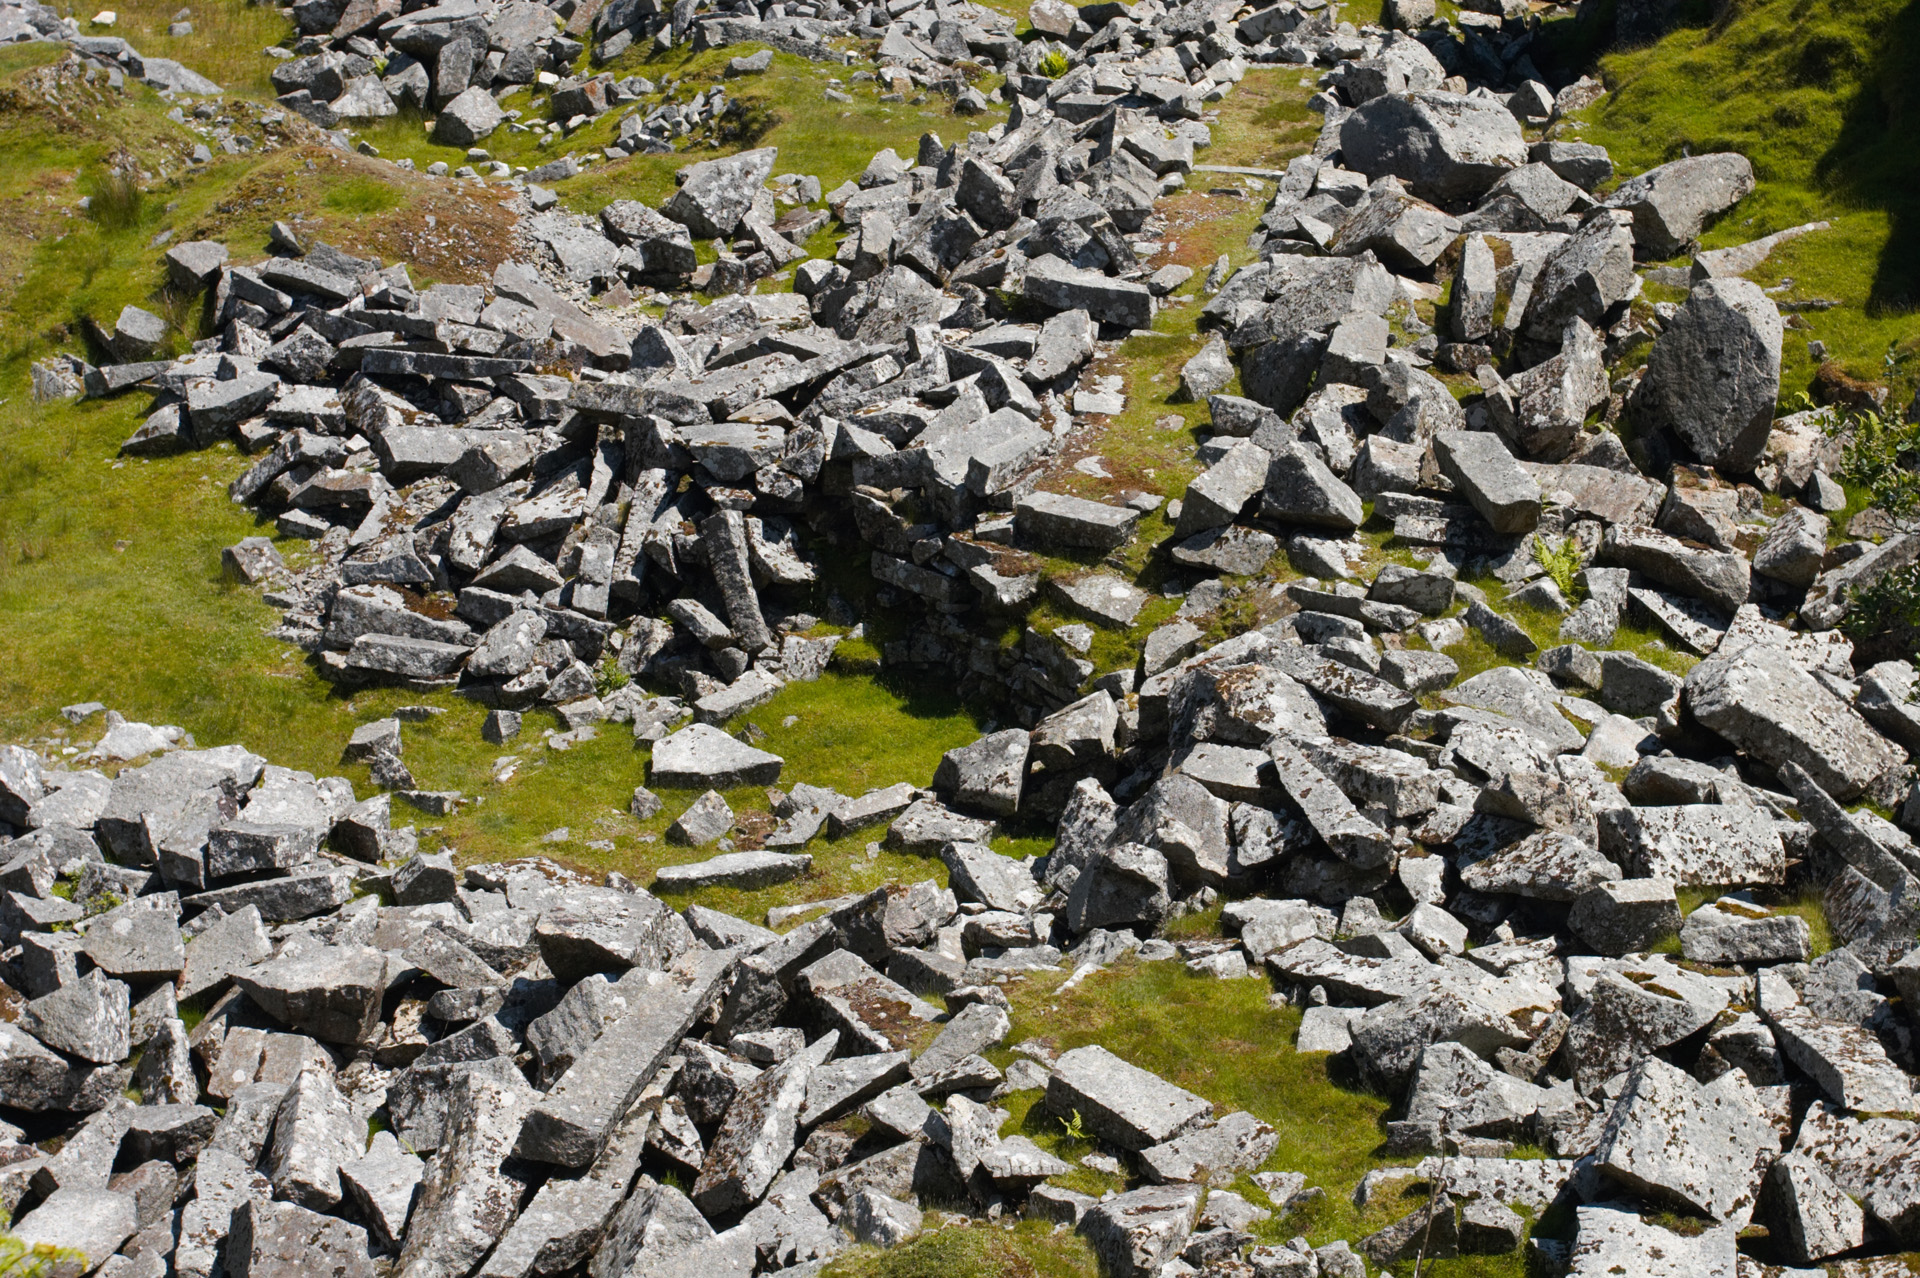 Shattered Granite Rocks at Cheesewring Quarry, Bodmin Moor